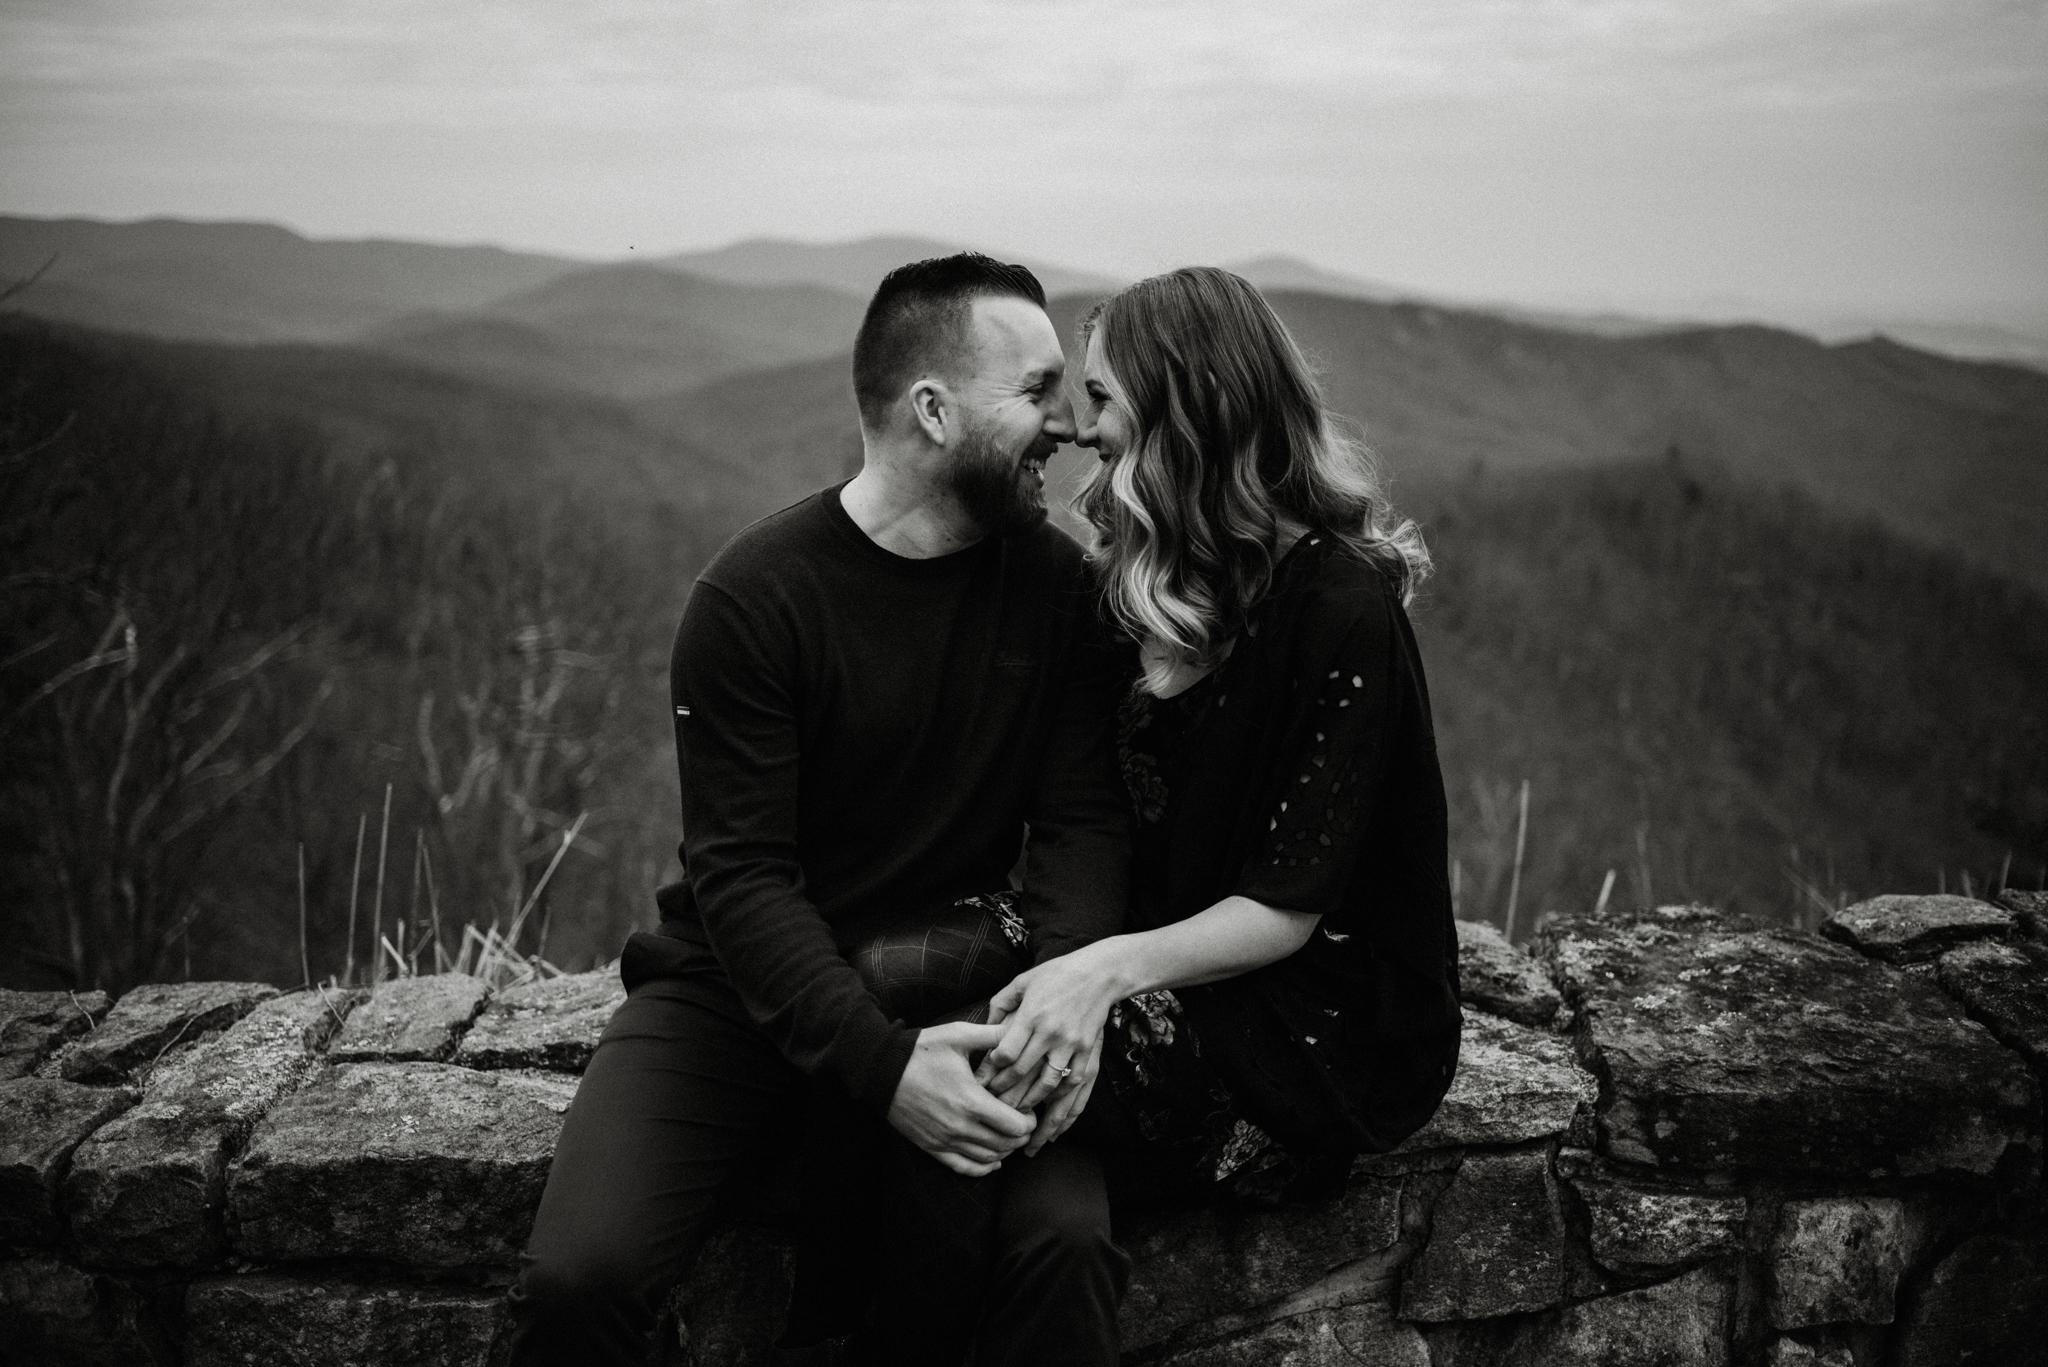 Nicole and Victor - Shenandoah National Park Engagement Photography - Blue Ridge Mountains Adventure Photography - White Sails Creative Photography_4.jpg